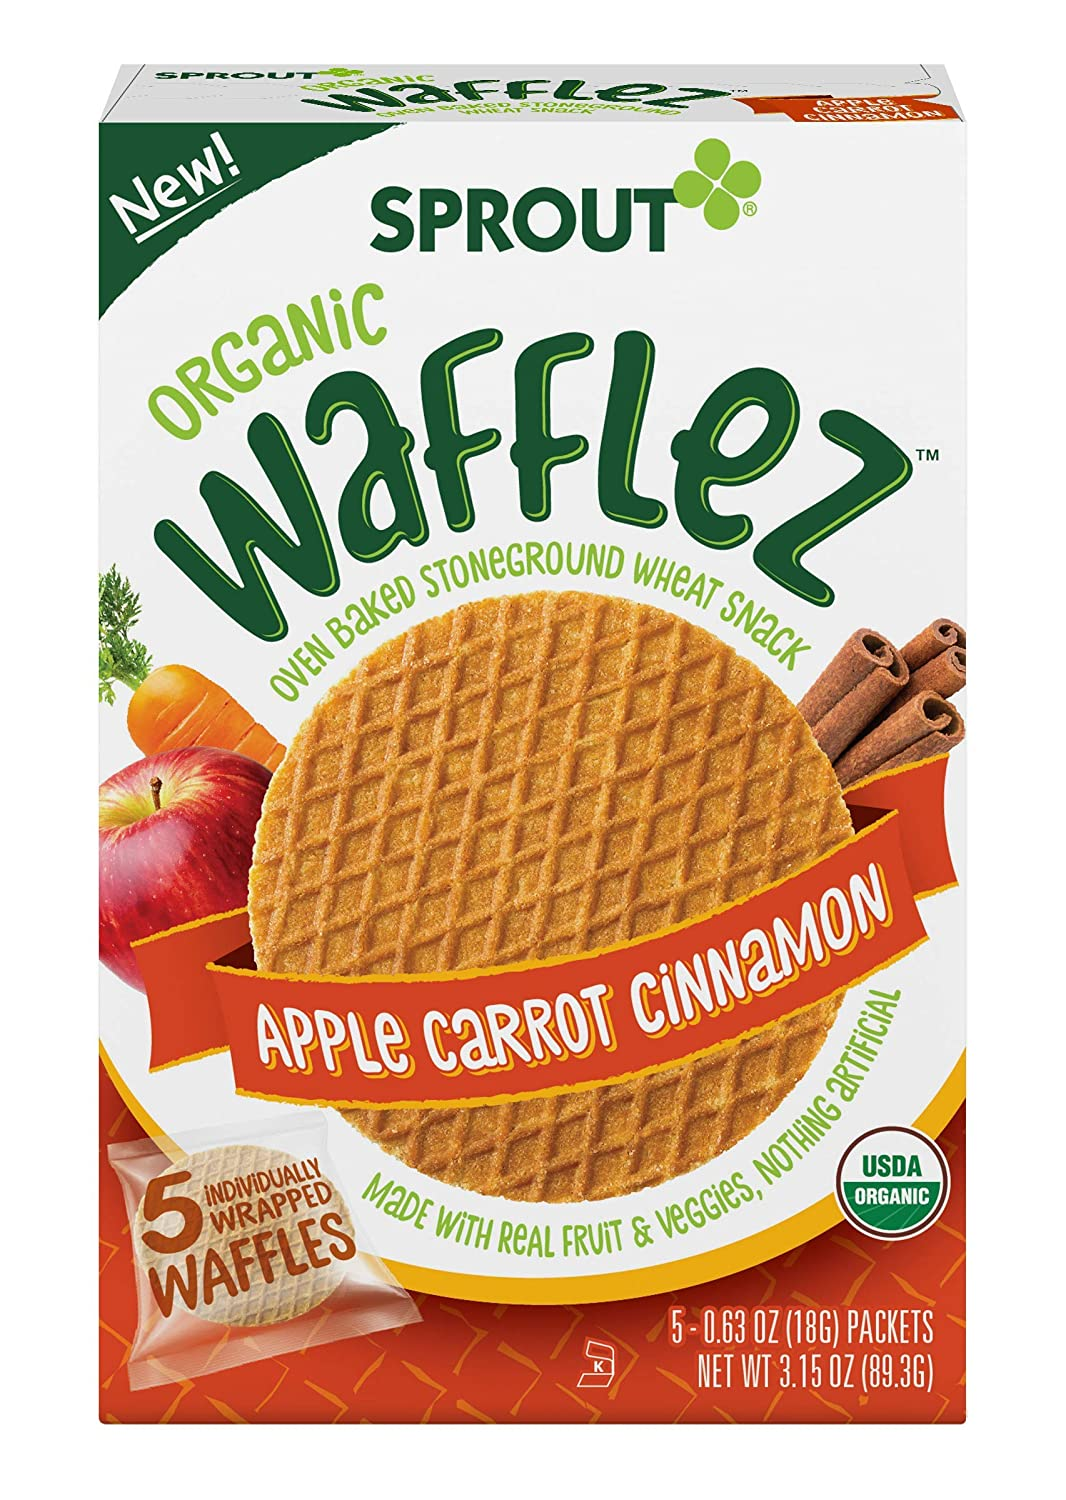 Sprout Organic Wafflez, Apple Carrot Cinnamon, (Each 5 Count of 0.63 oz Packets) 3.15 oz, Pack of 10